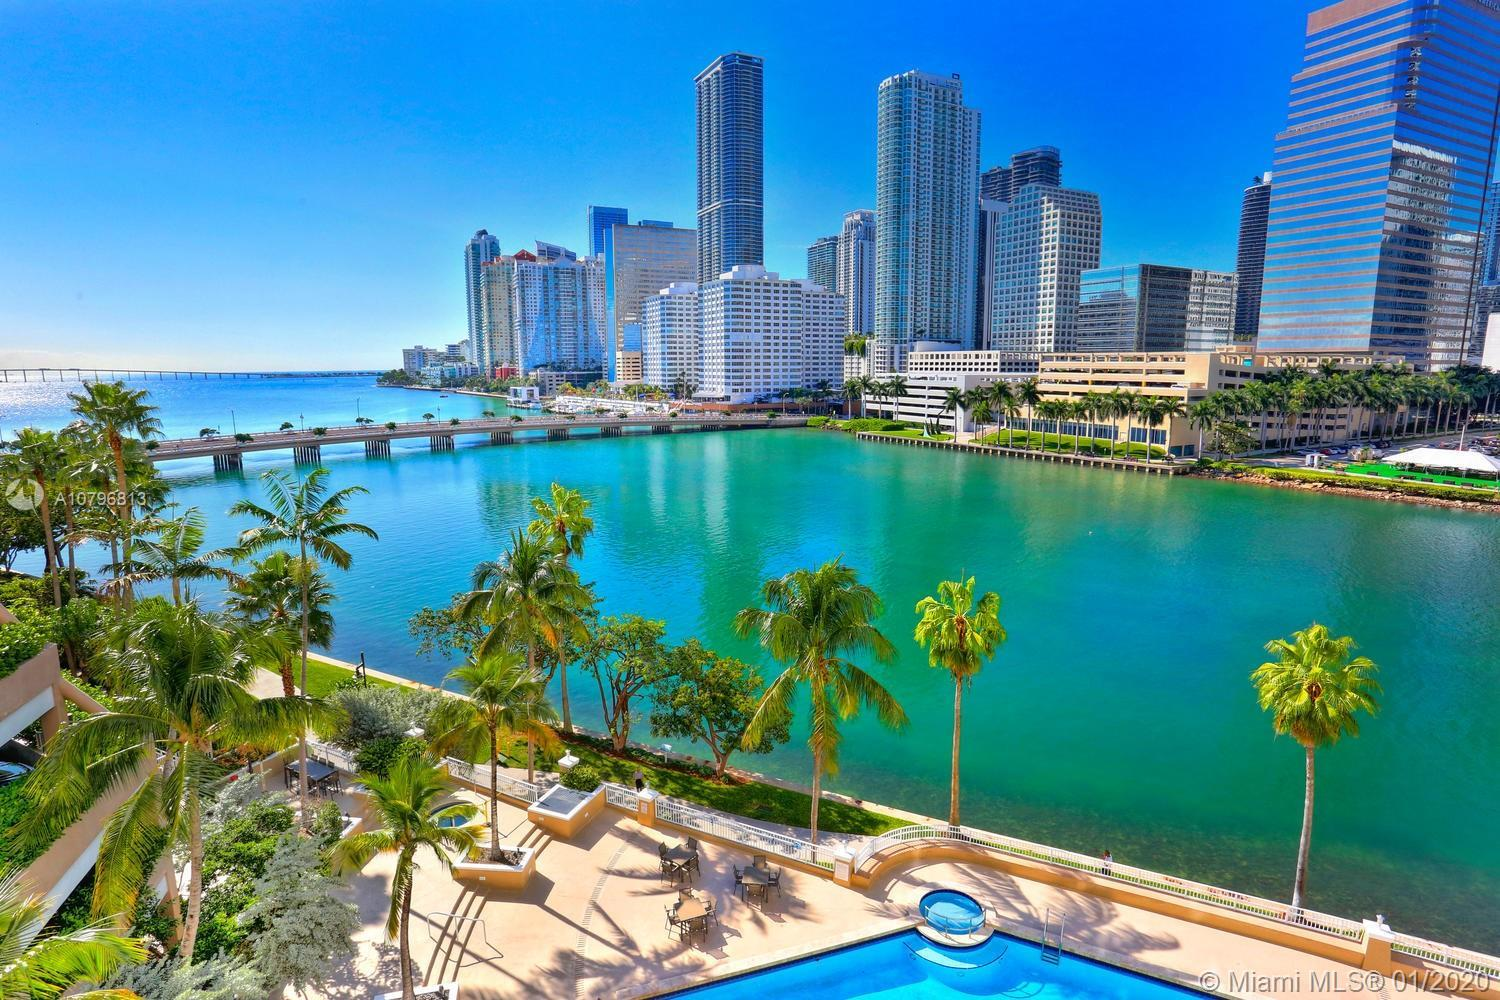 Live like you're on vacation at this waterfront Brickell Key 1 bedroom/1.5 bath condo unit! This pro